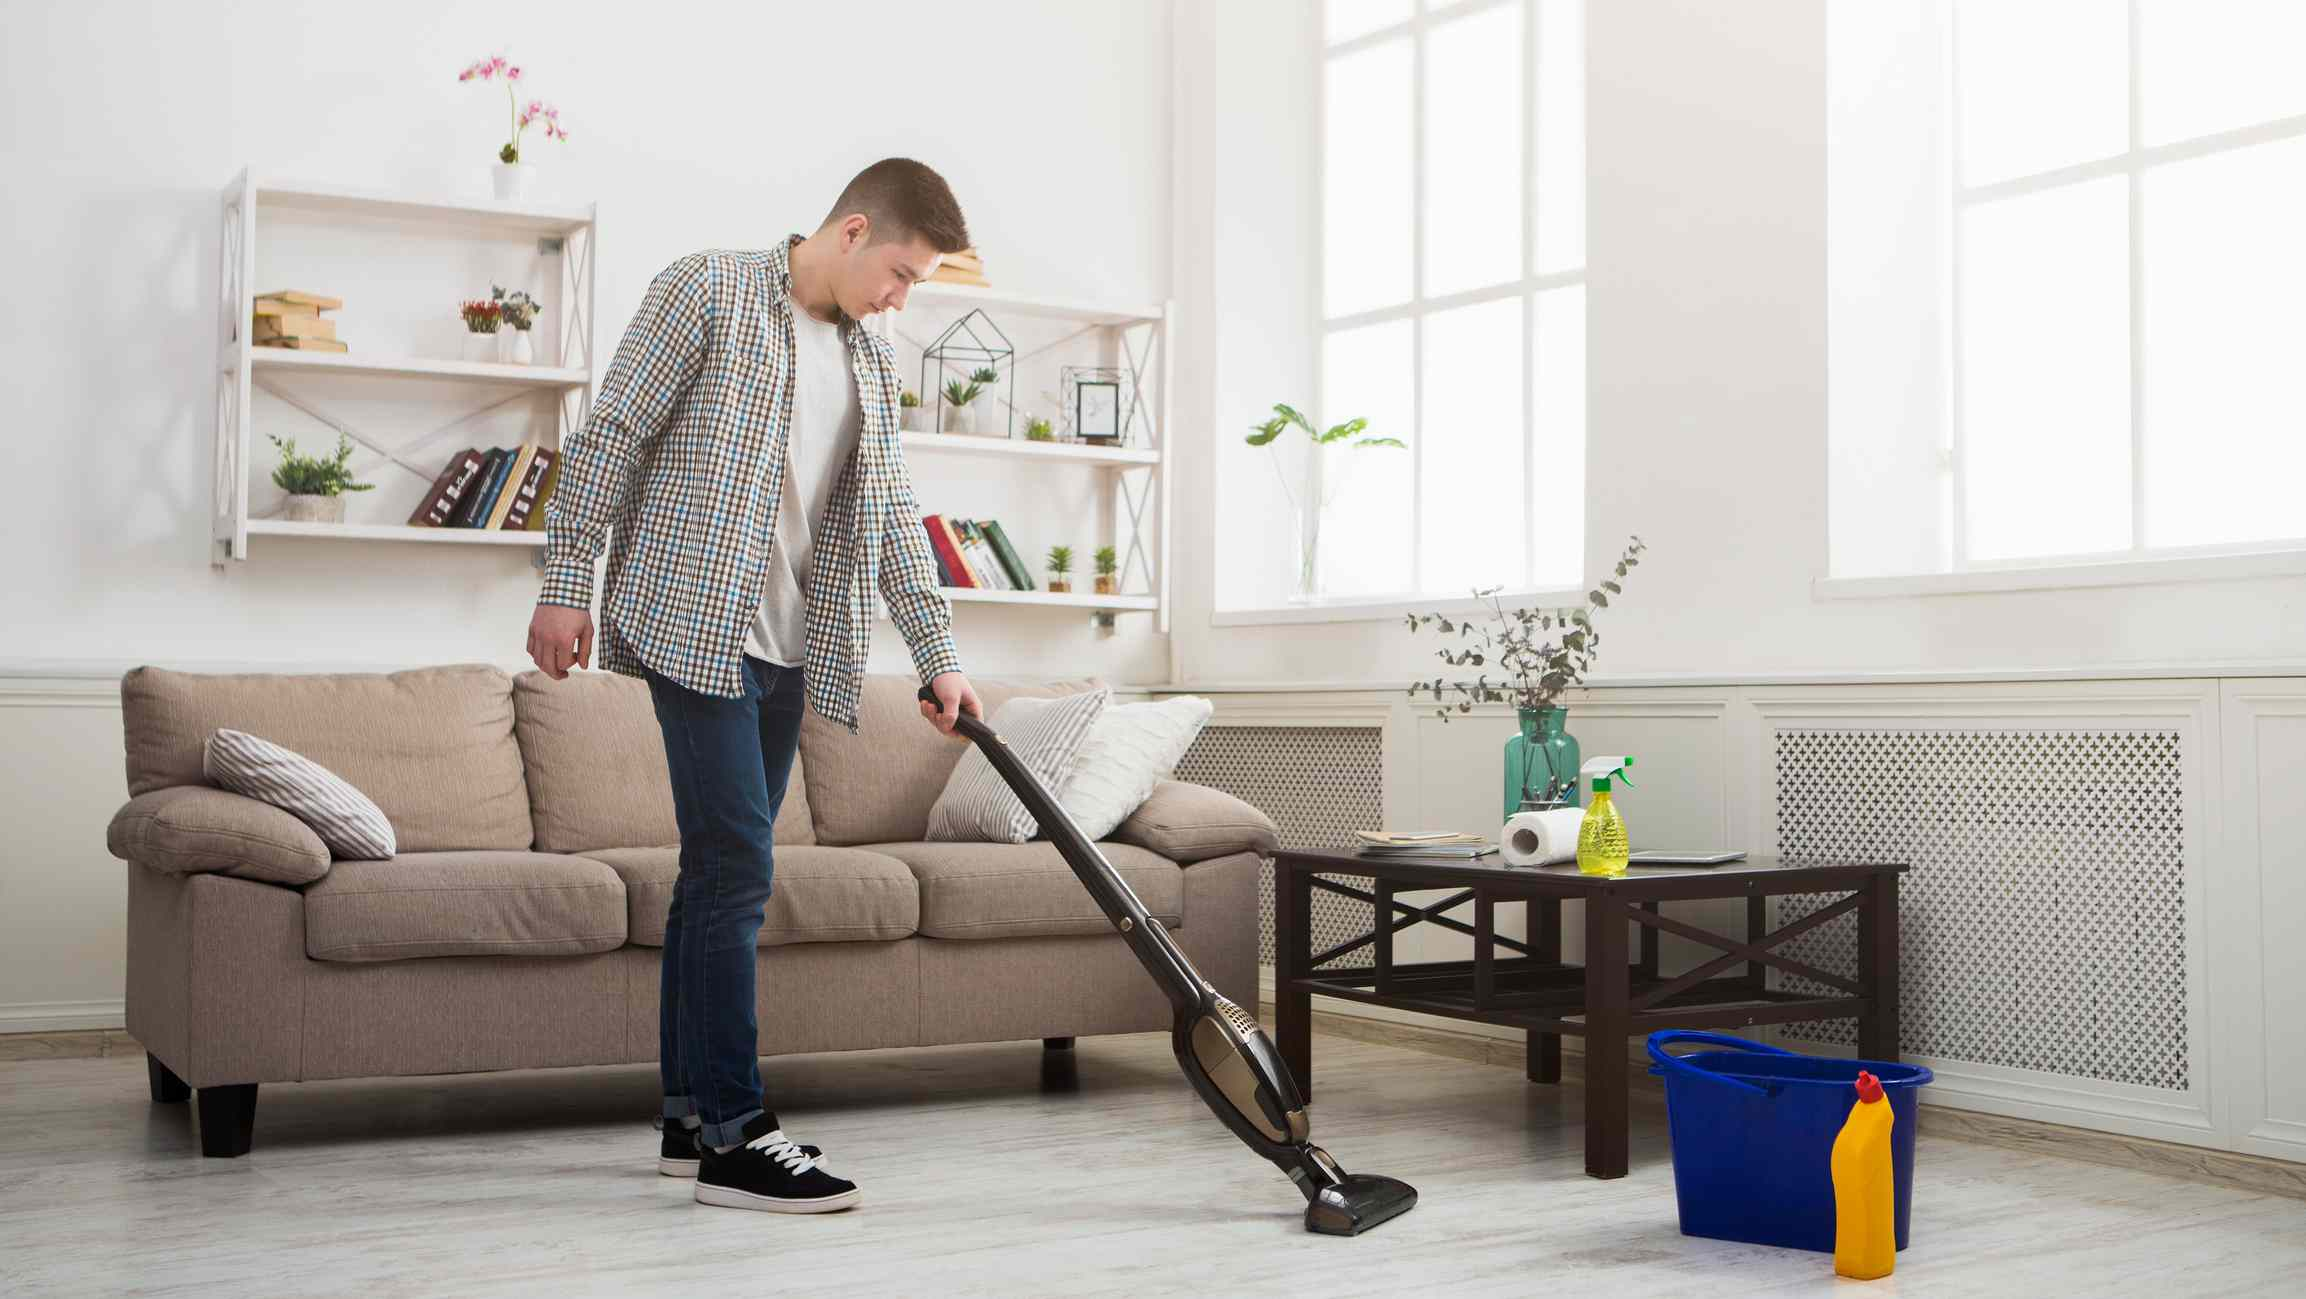 person vacuuming the living room